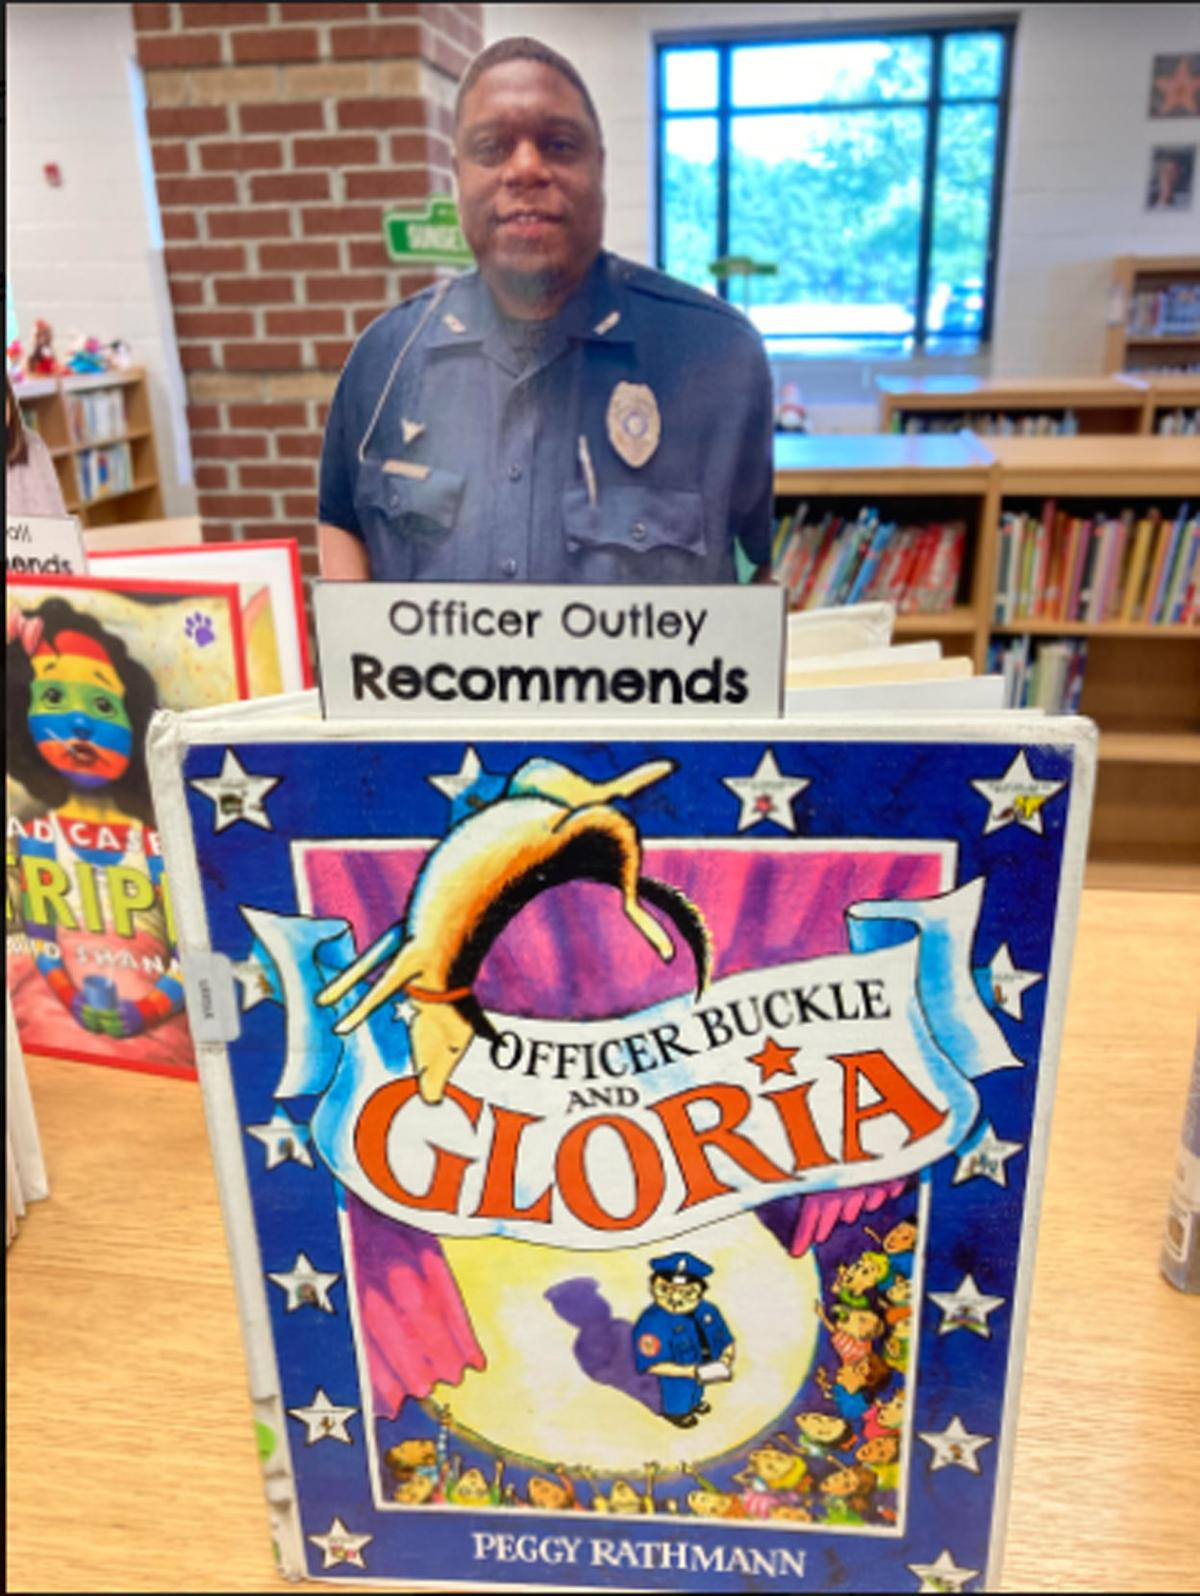 SRO Outley praised by CHES principal for creating 'community of positivity'